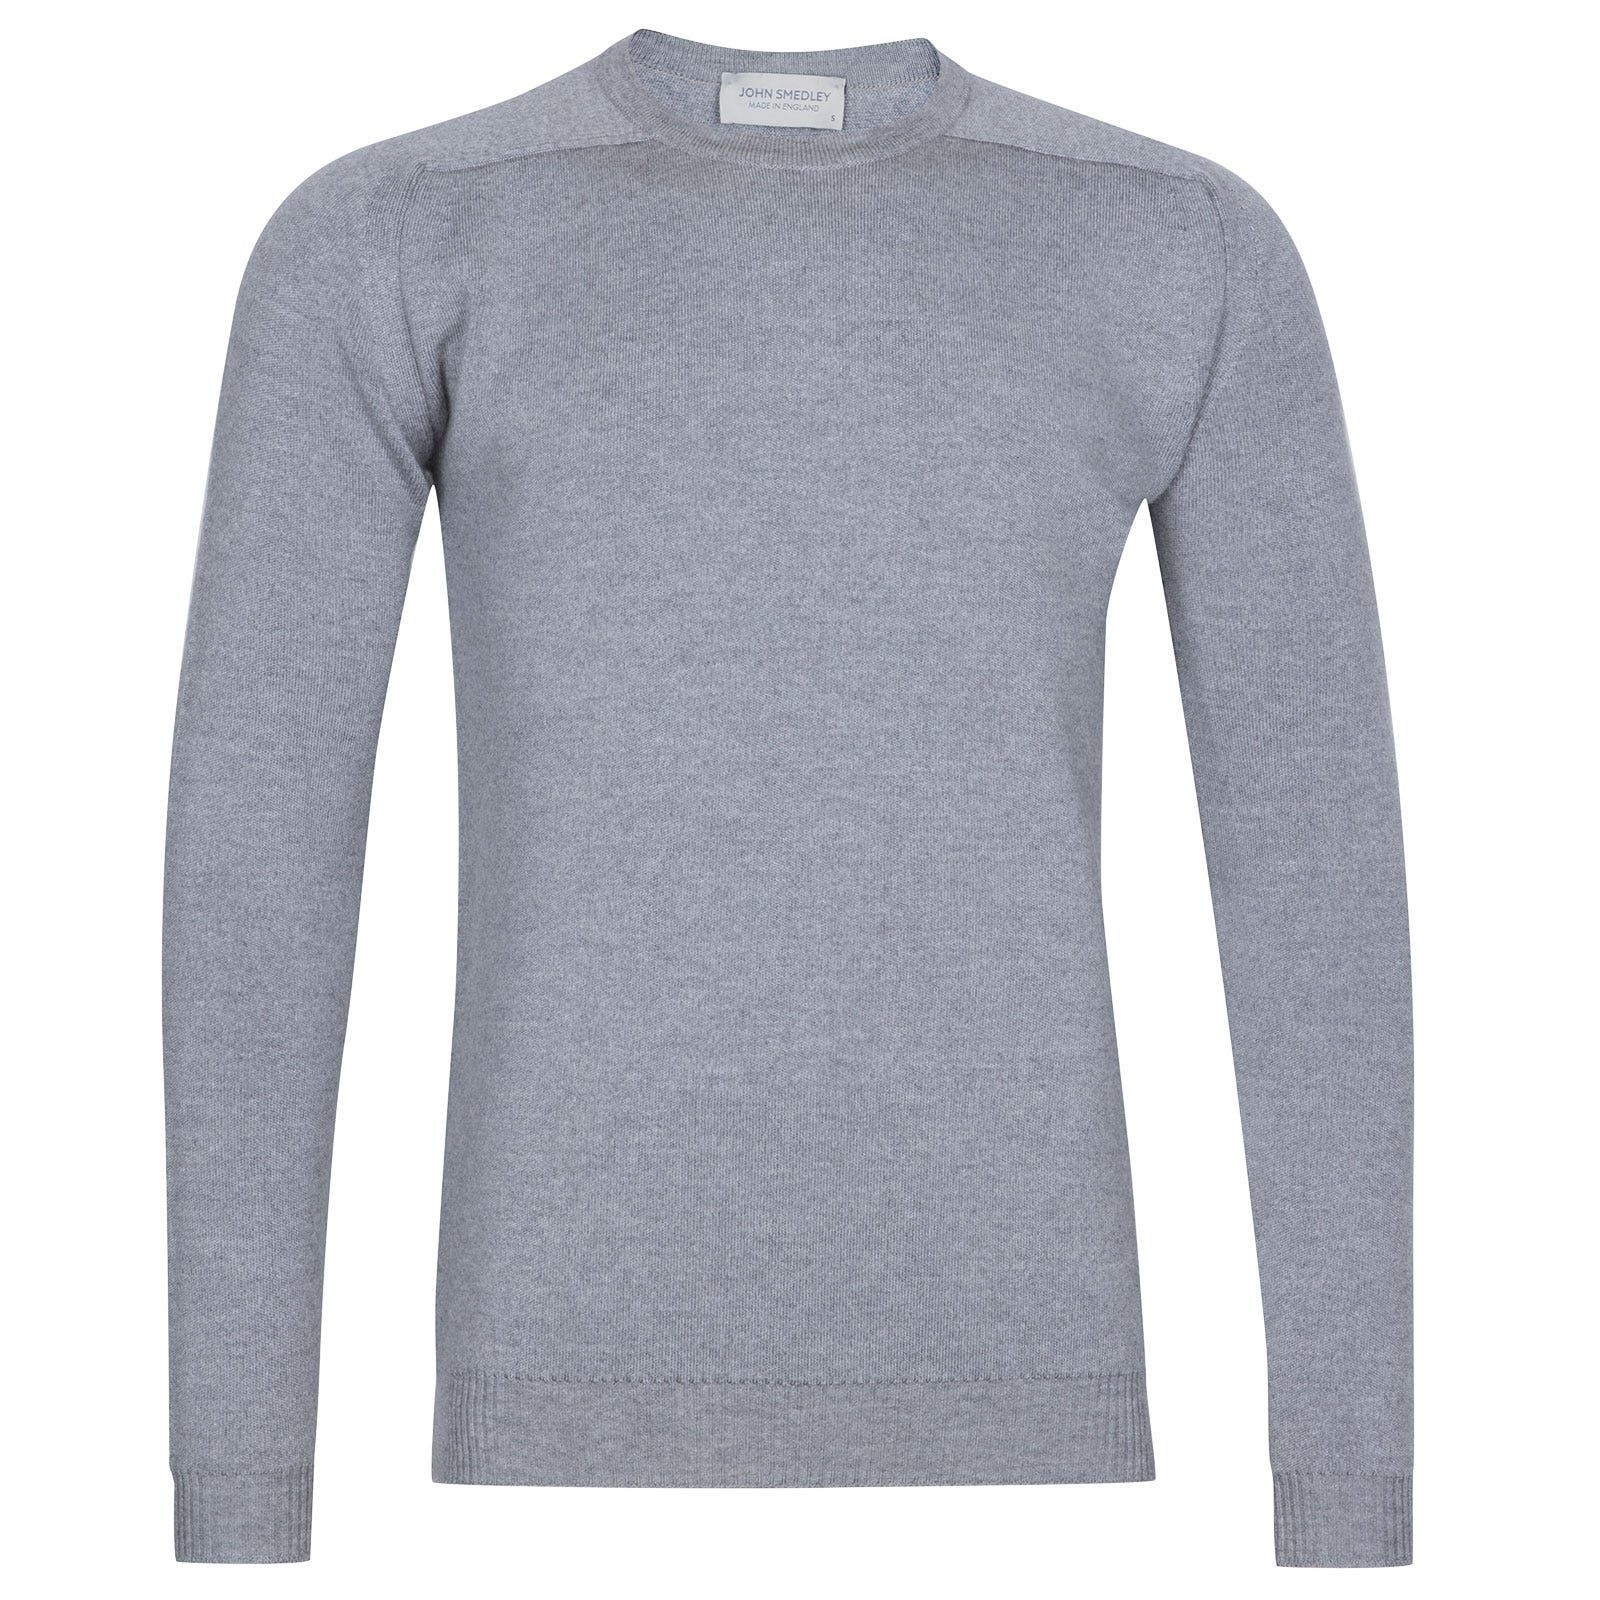 John Smedley Hawling Merino Wool Pullover in Silver-M